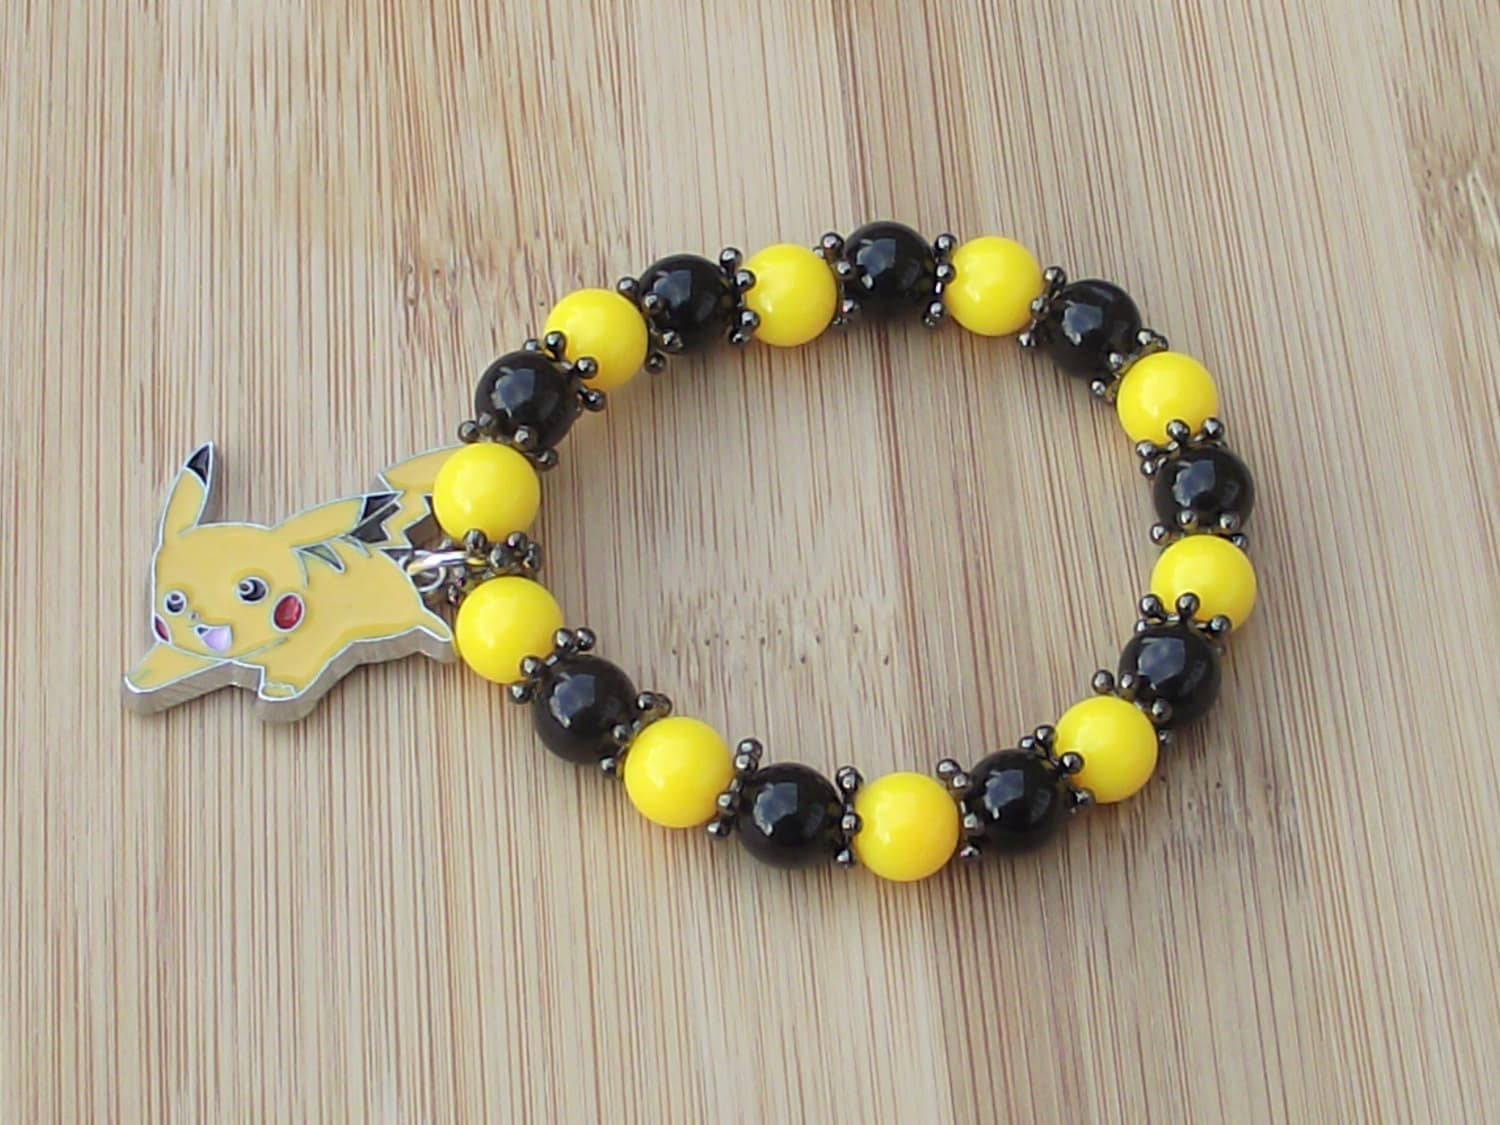 PIKACHU POKEMON Boys or Girls Adults Yellow  Black Beaded Handcrafted Stretchy Bracelet  With Enamel Pokemon Pikachu Dangle Charm